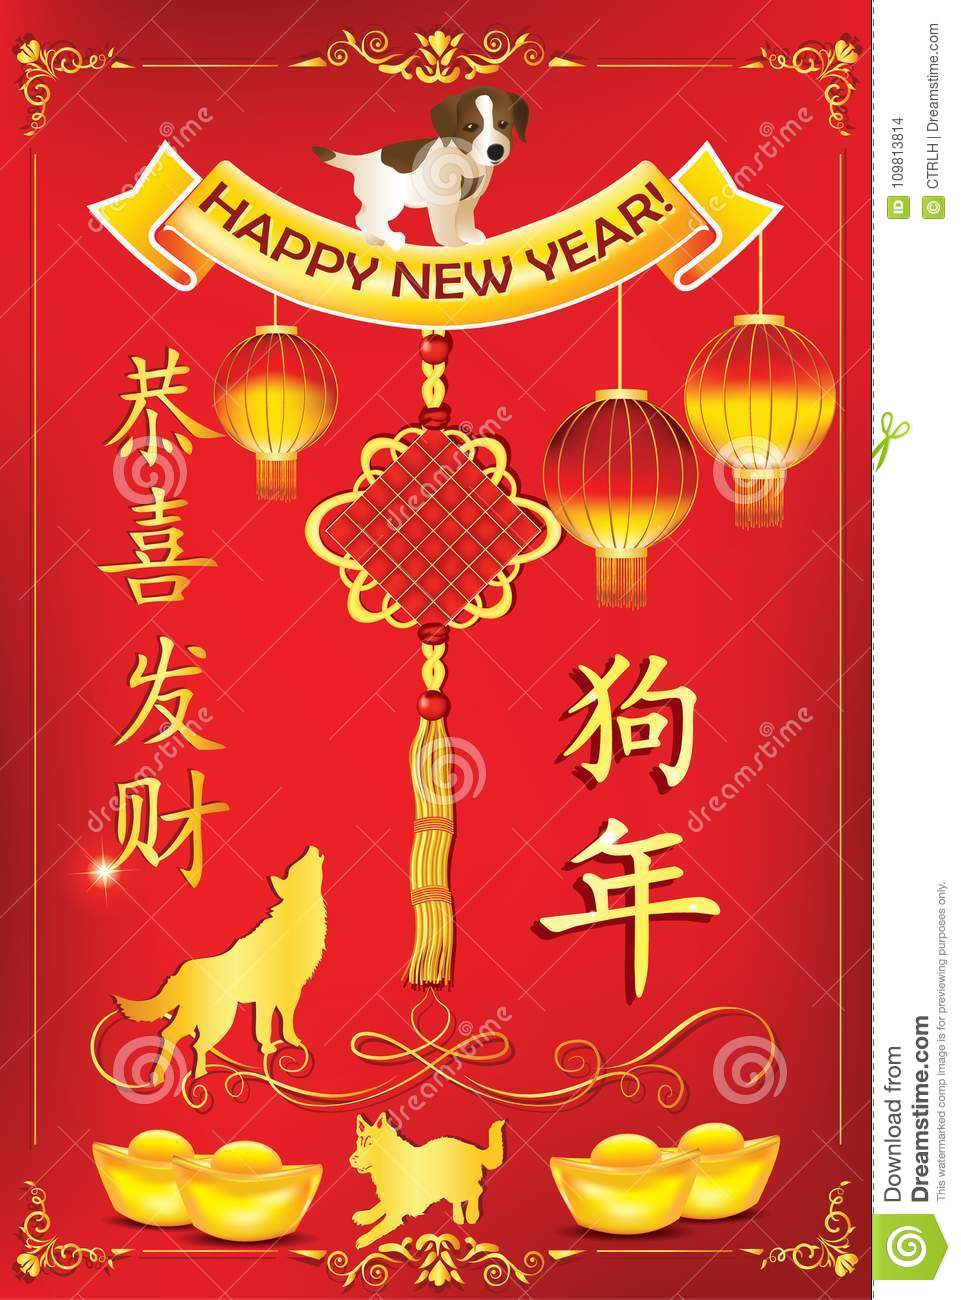 Happy chinese new year of the dog 2018 red greeting card with happy chinese new year of the dog 2018 red greeting card with text in m4hsunfo